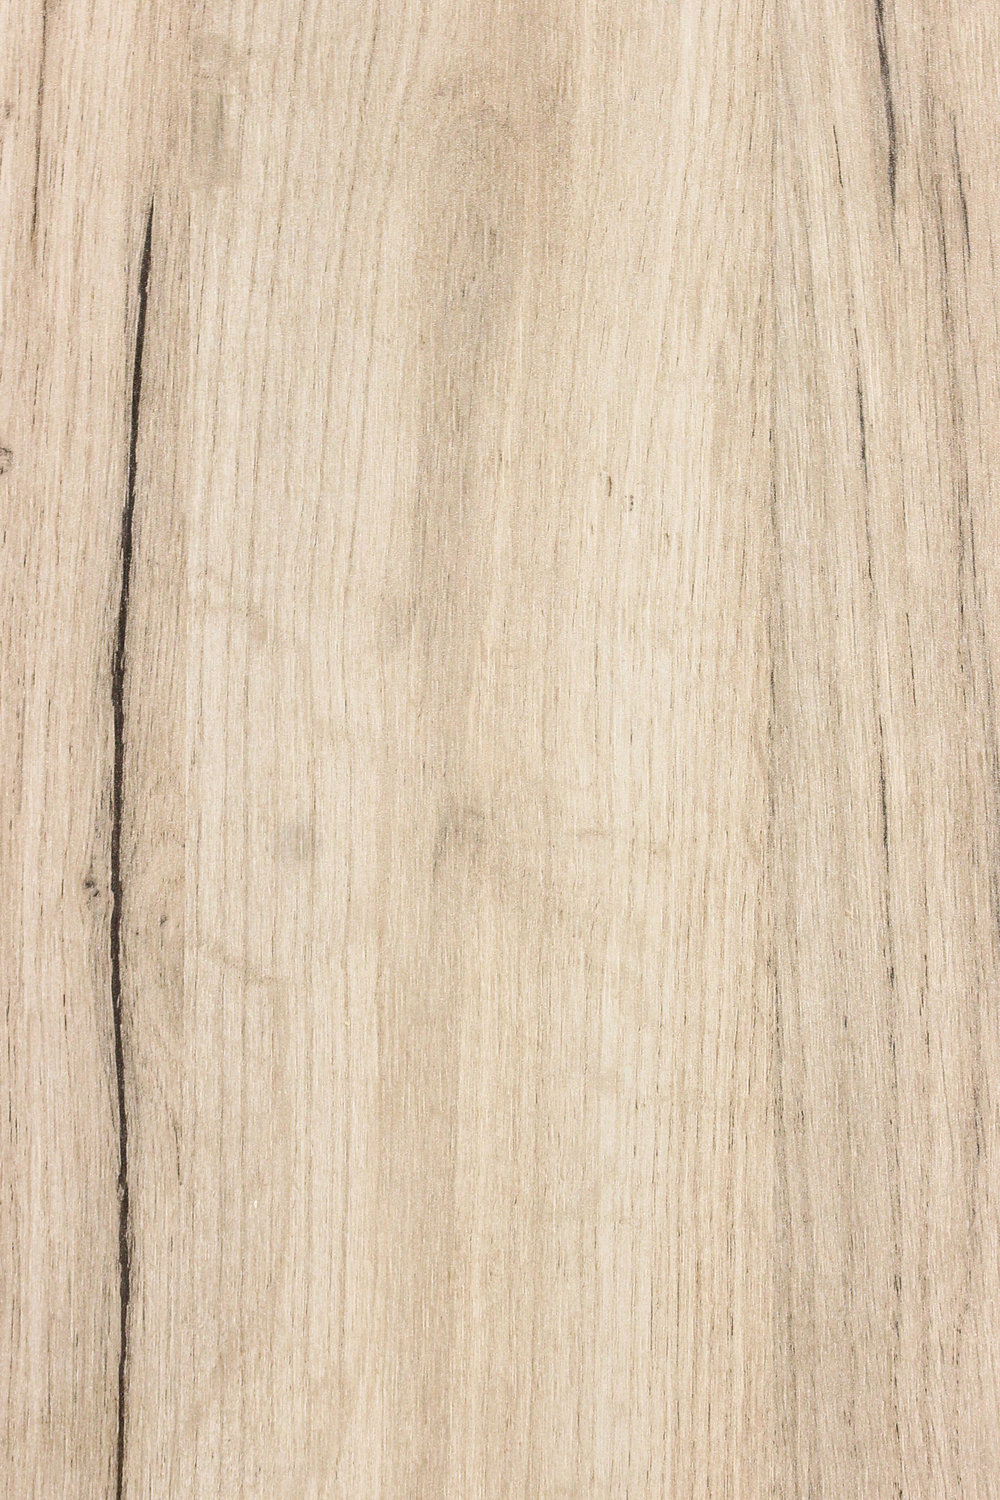 K002 -  GREY CRAFT OAK